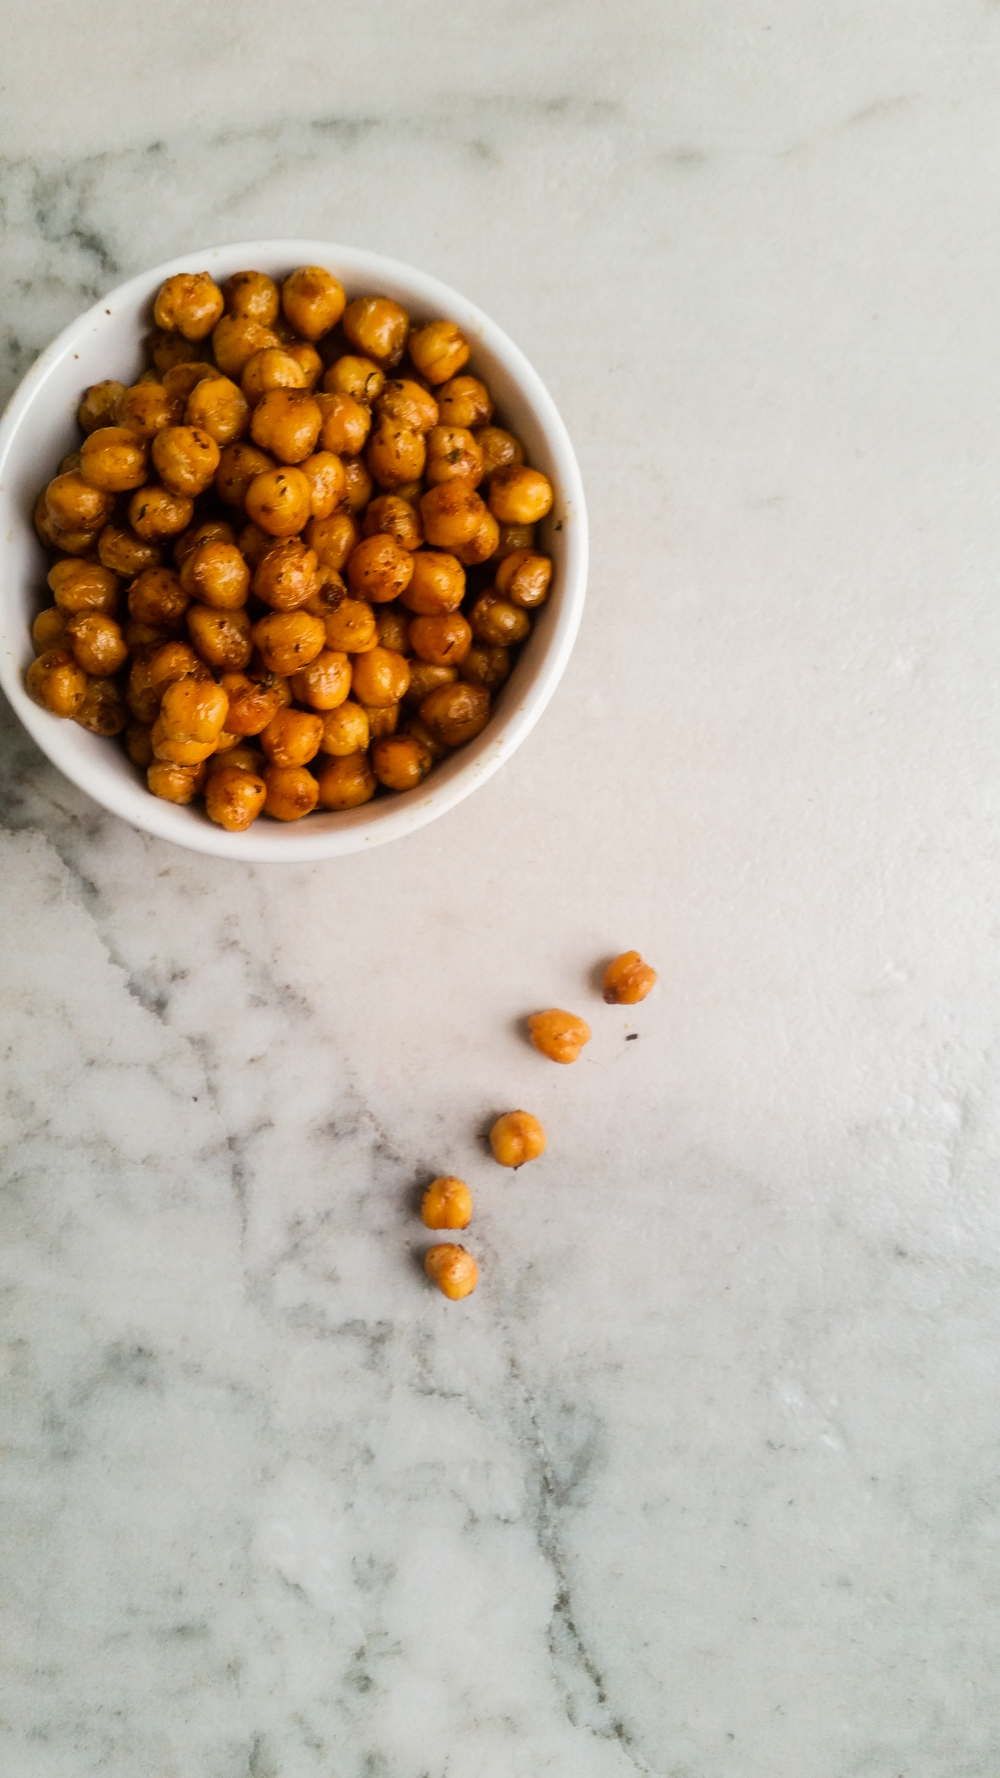 MAW4 Chickpea snack (2 of 2).jpg